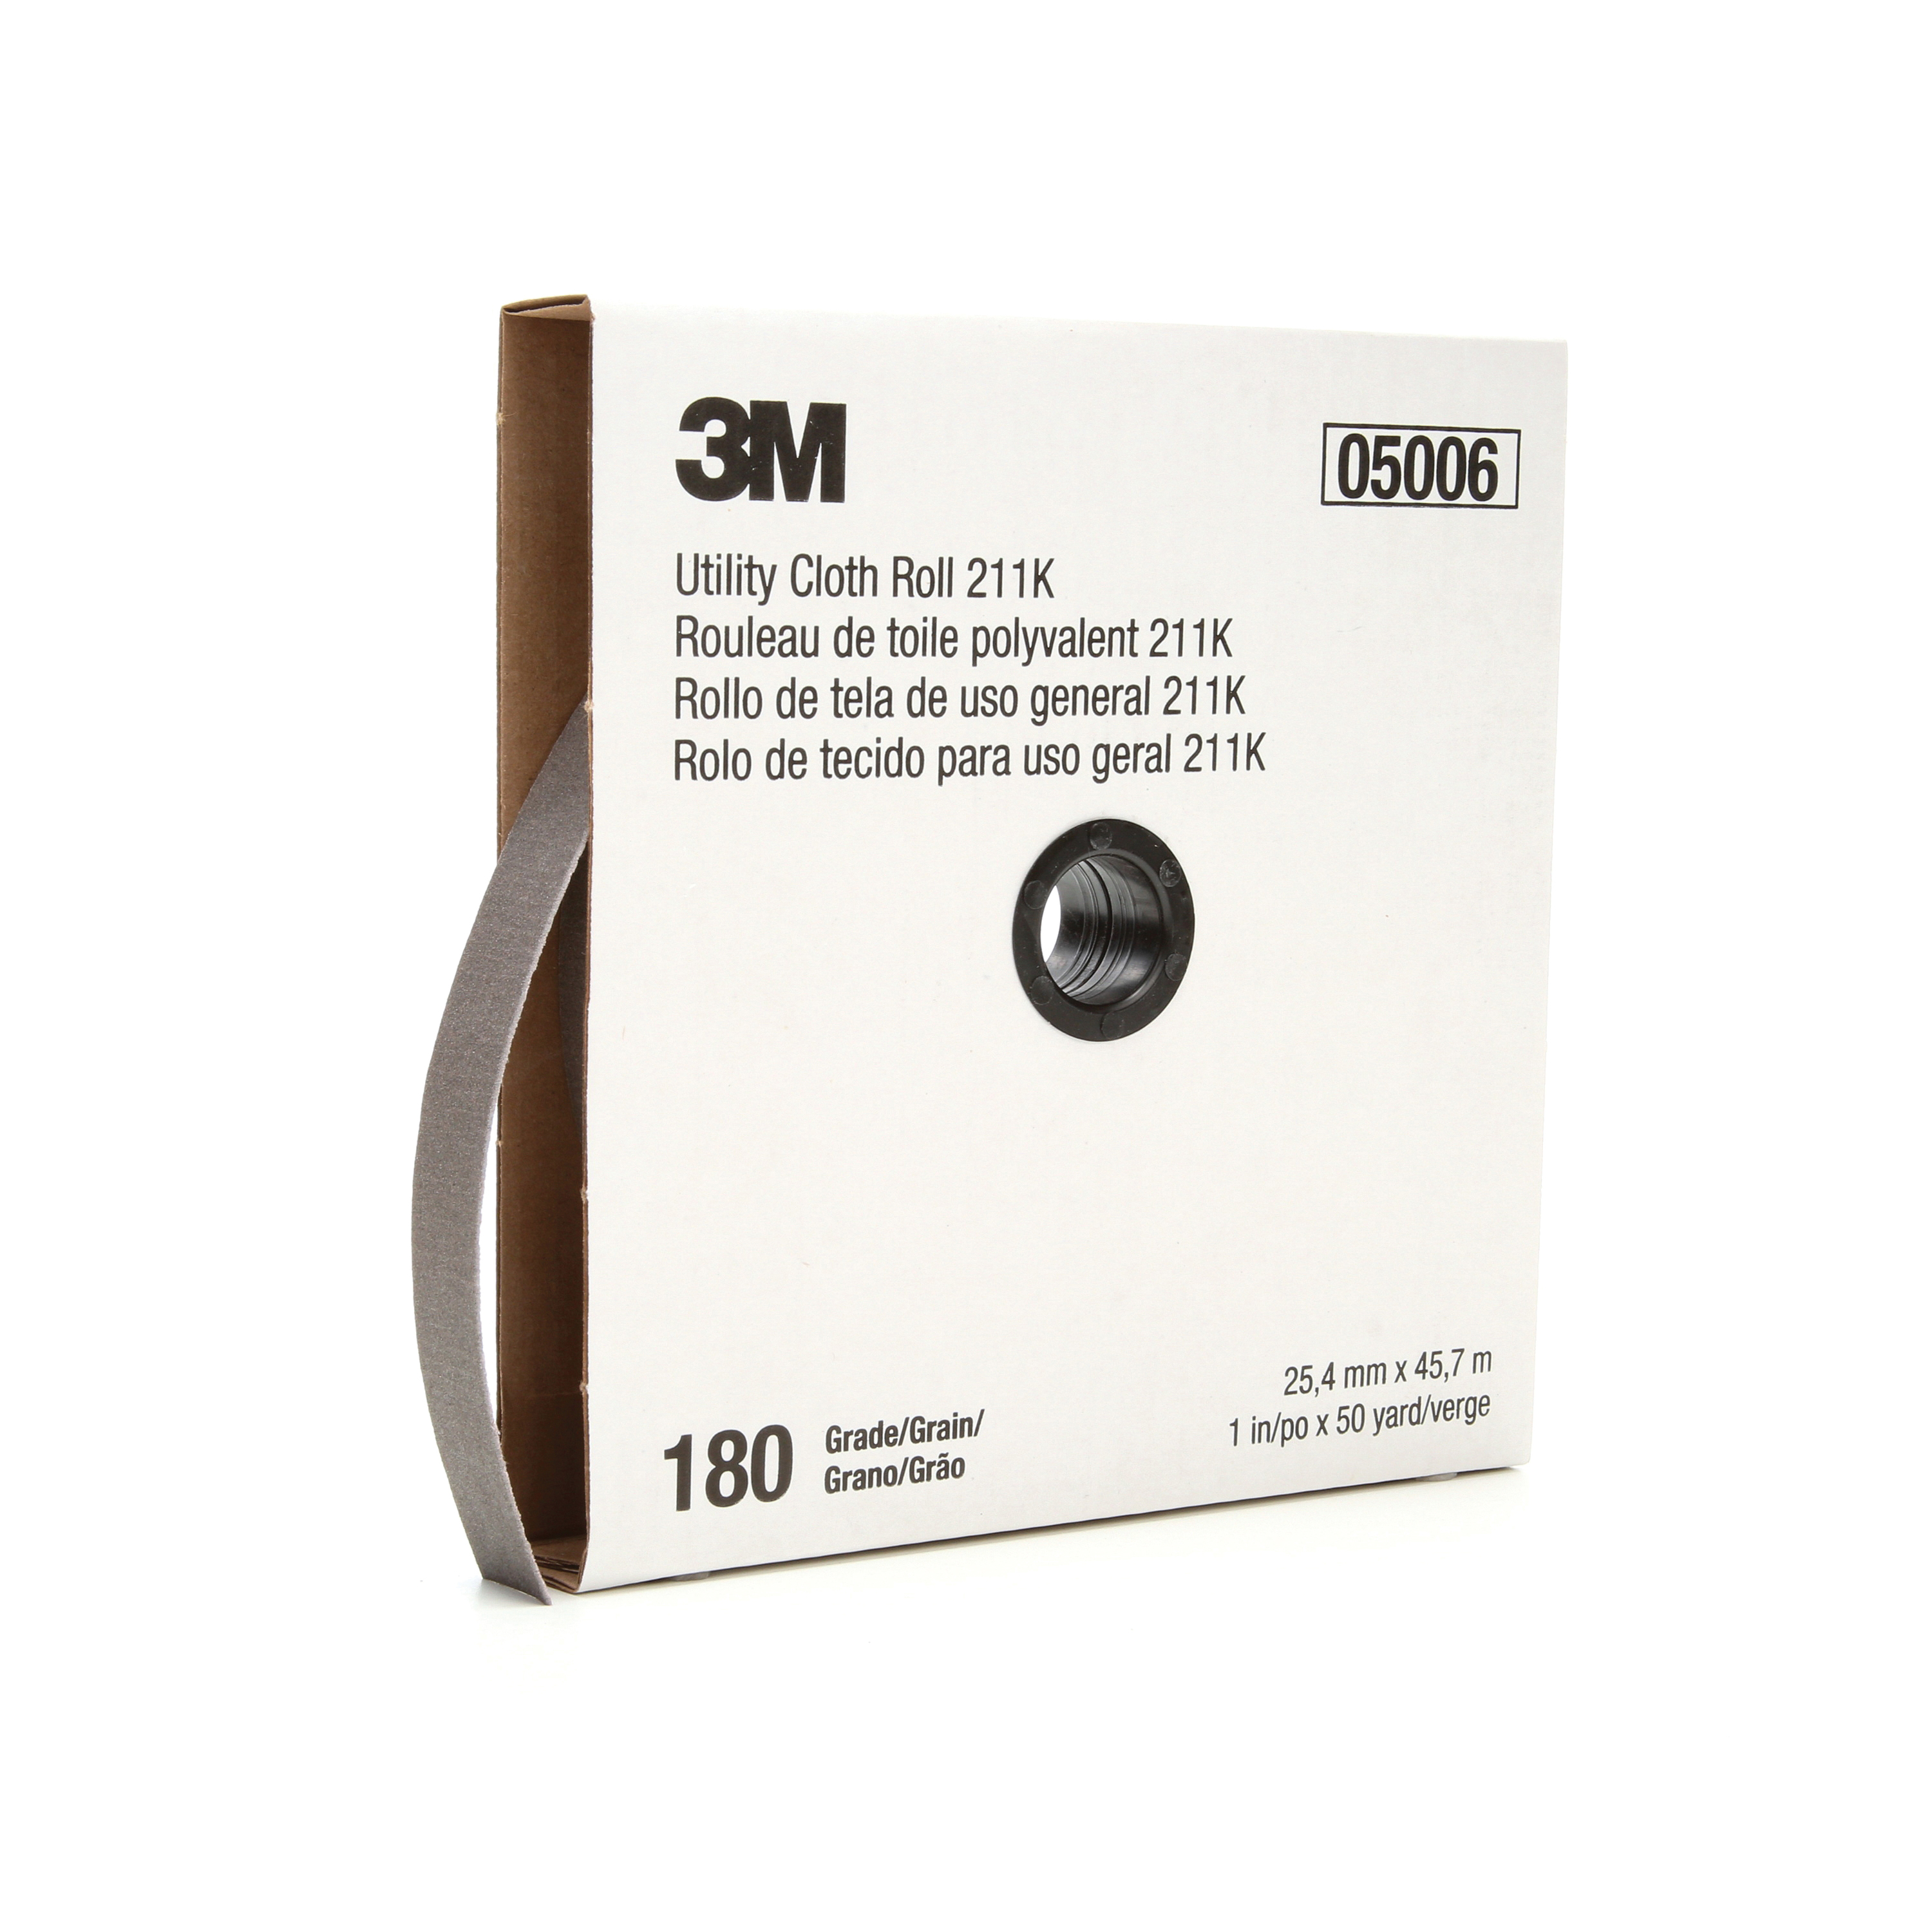 3M™ 051144-05006 Utility Cloth Roll, 1 in W x 50 yd L, 180 Grit, Very Fine Grade, Aluminum Oxide Abrasive, Cloth Backing